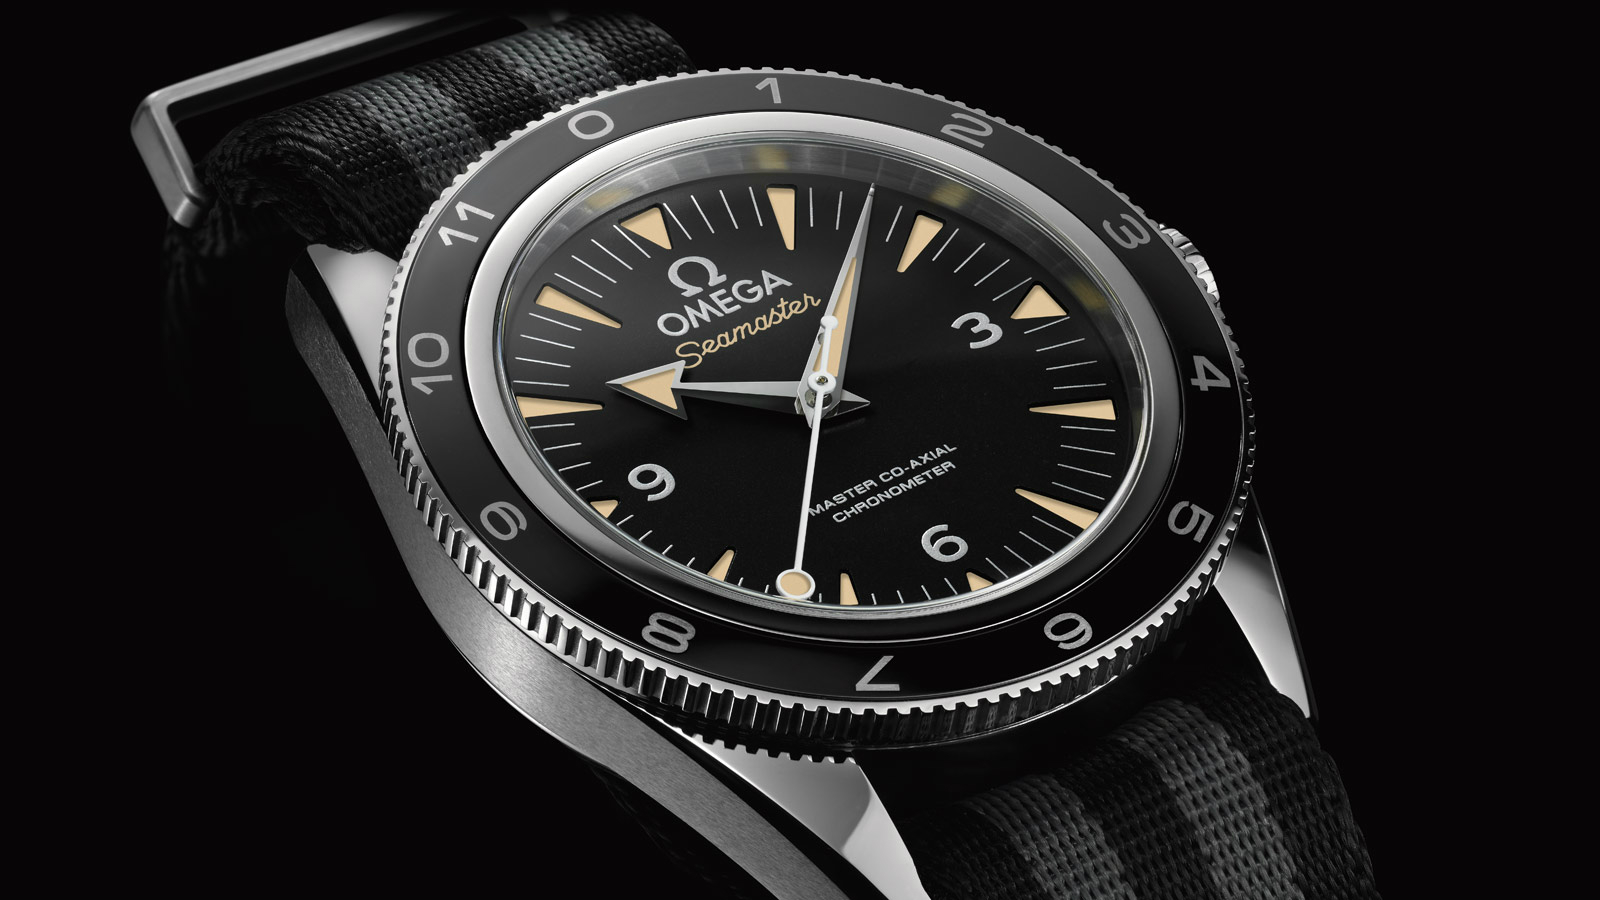 OMEGA_Seamaster 300 SPECTRE Limited Edition_Lifestyle_2_1600x900